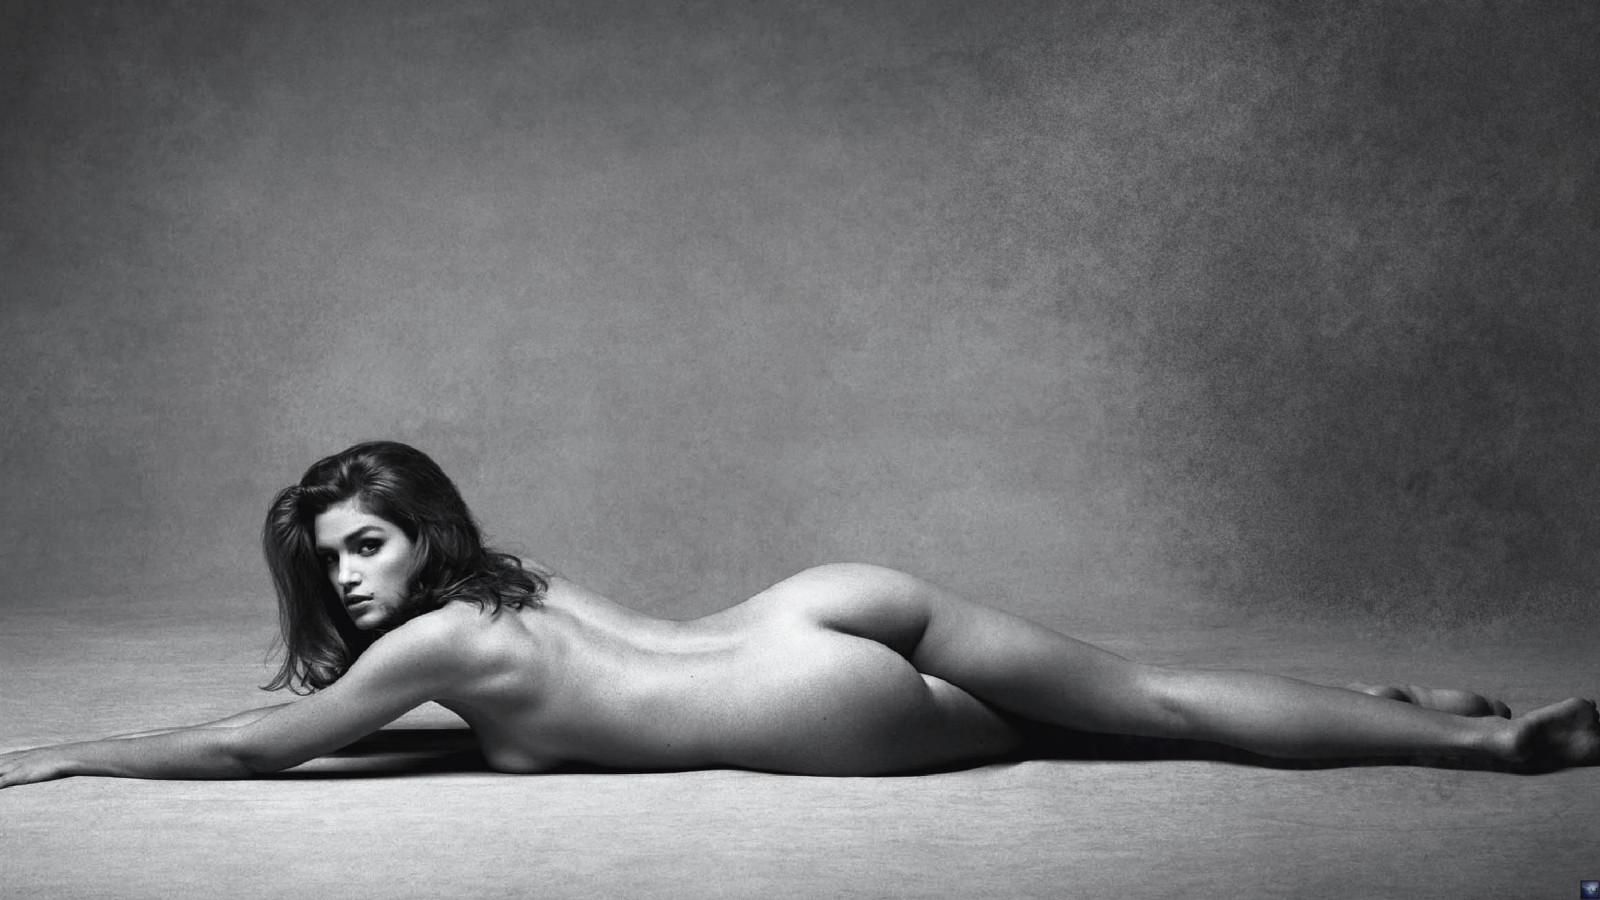 cindy crawford nude photo の 画像 cindy crawford nude photo 関連 ...: lite.jpg4.info/Cindy+Crawford+nude+photo/pic1.html